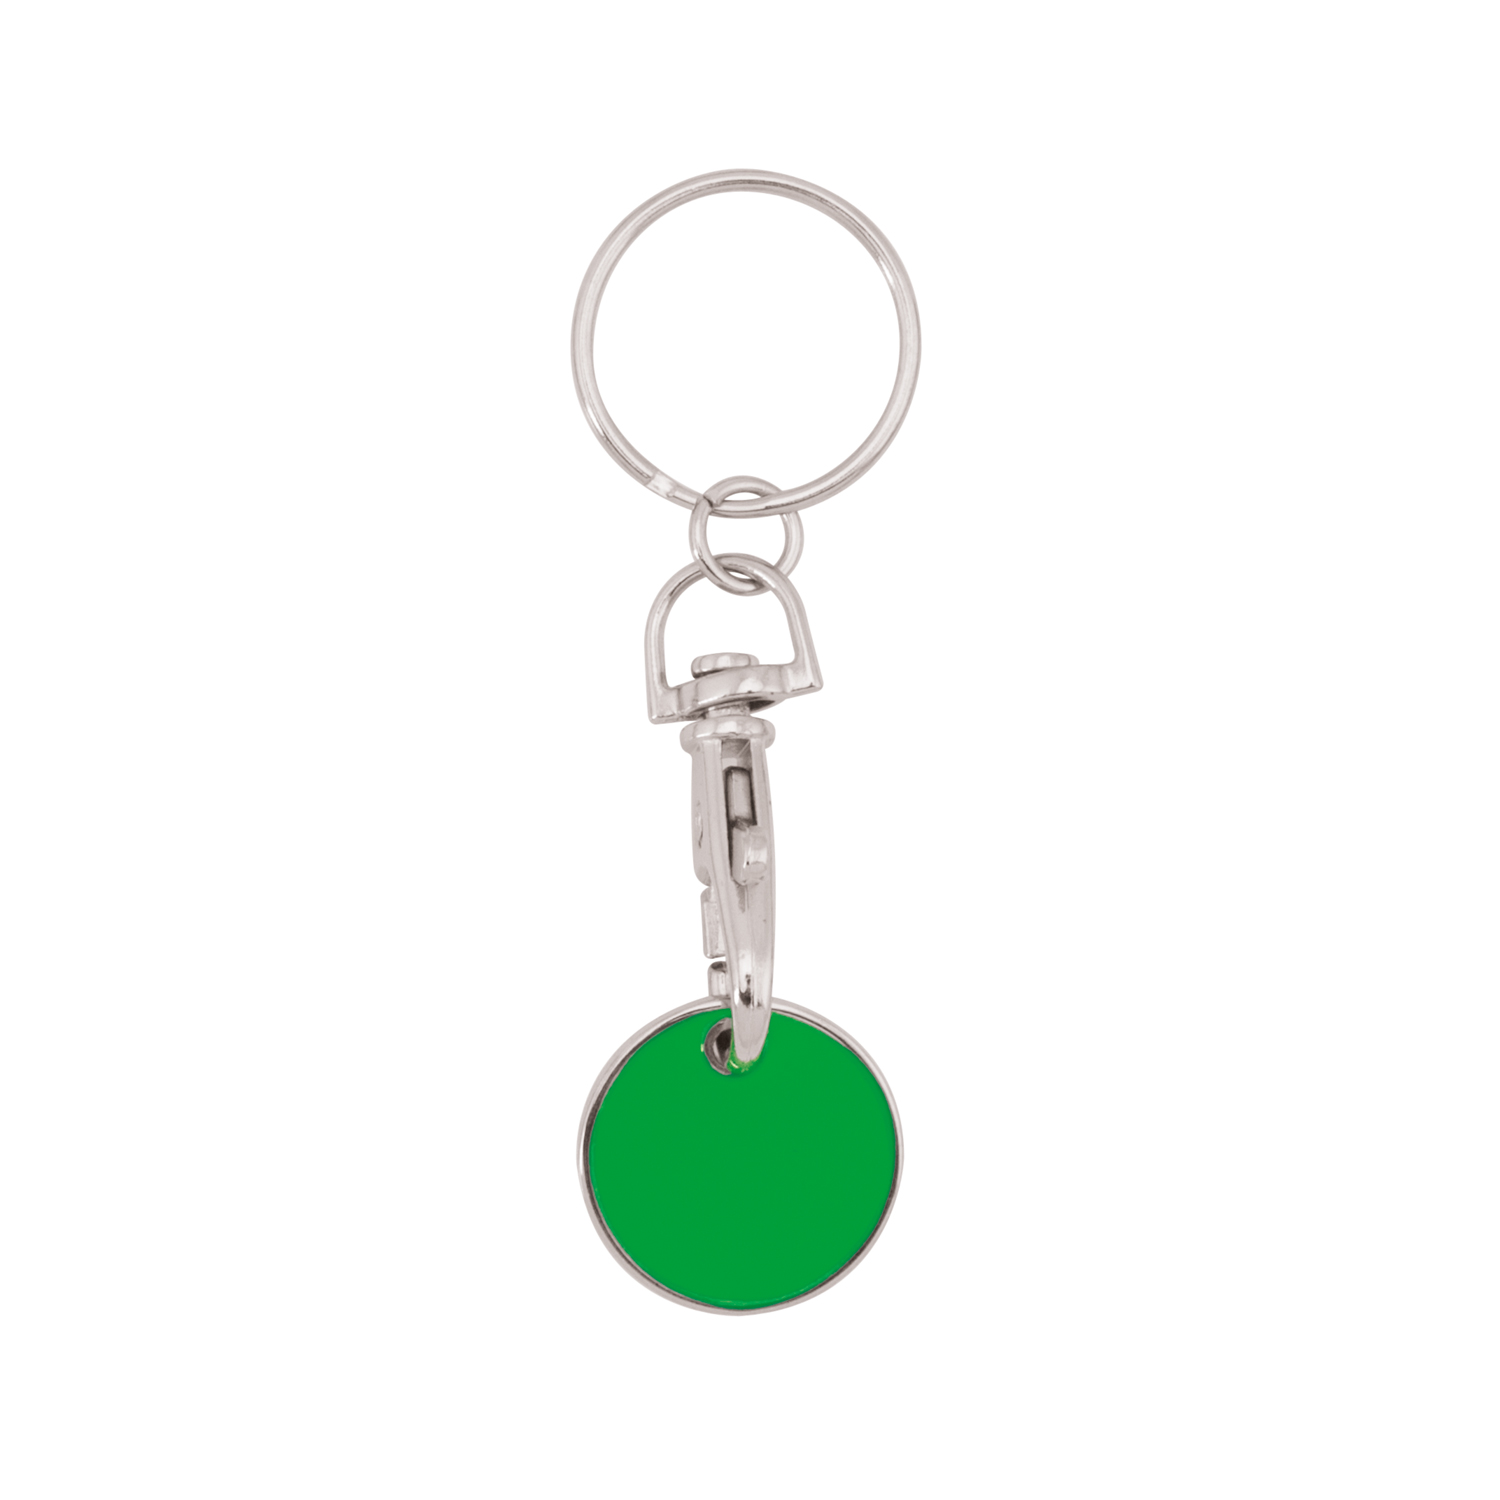 Keychain 059 (Shopping trolley coin keychain) - hmi47059-09 (Green)